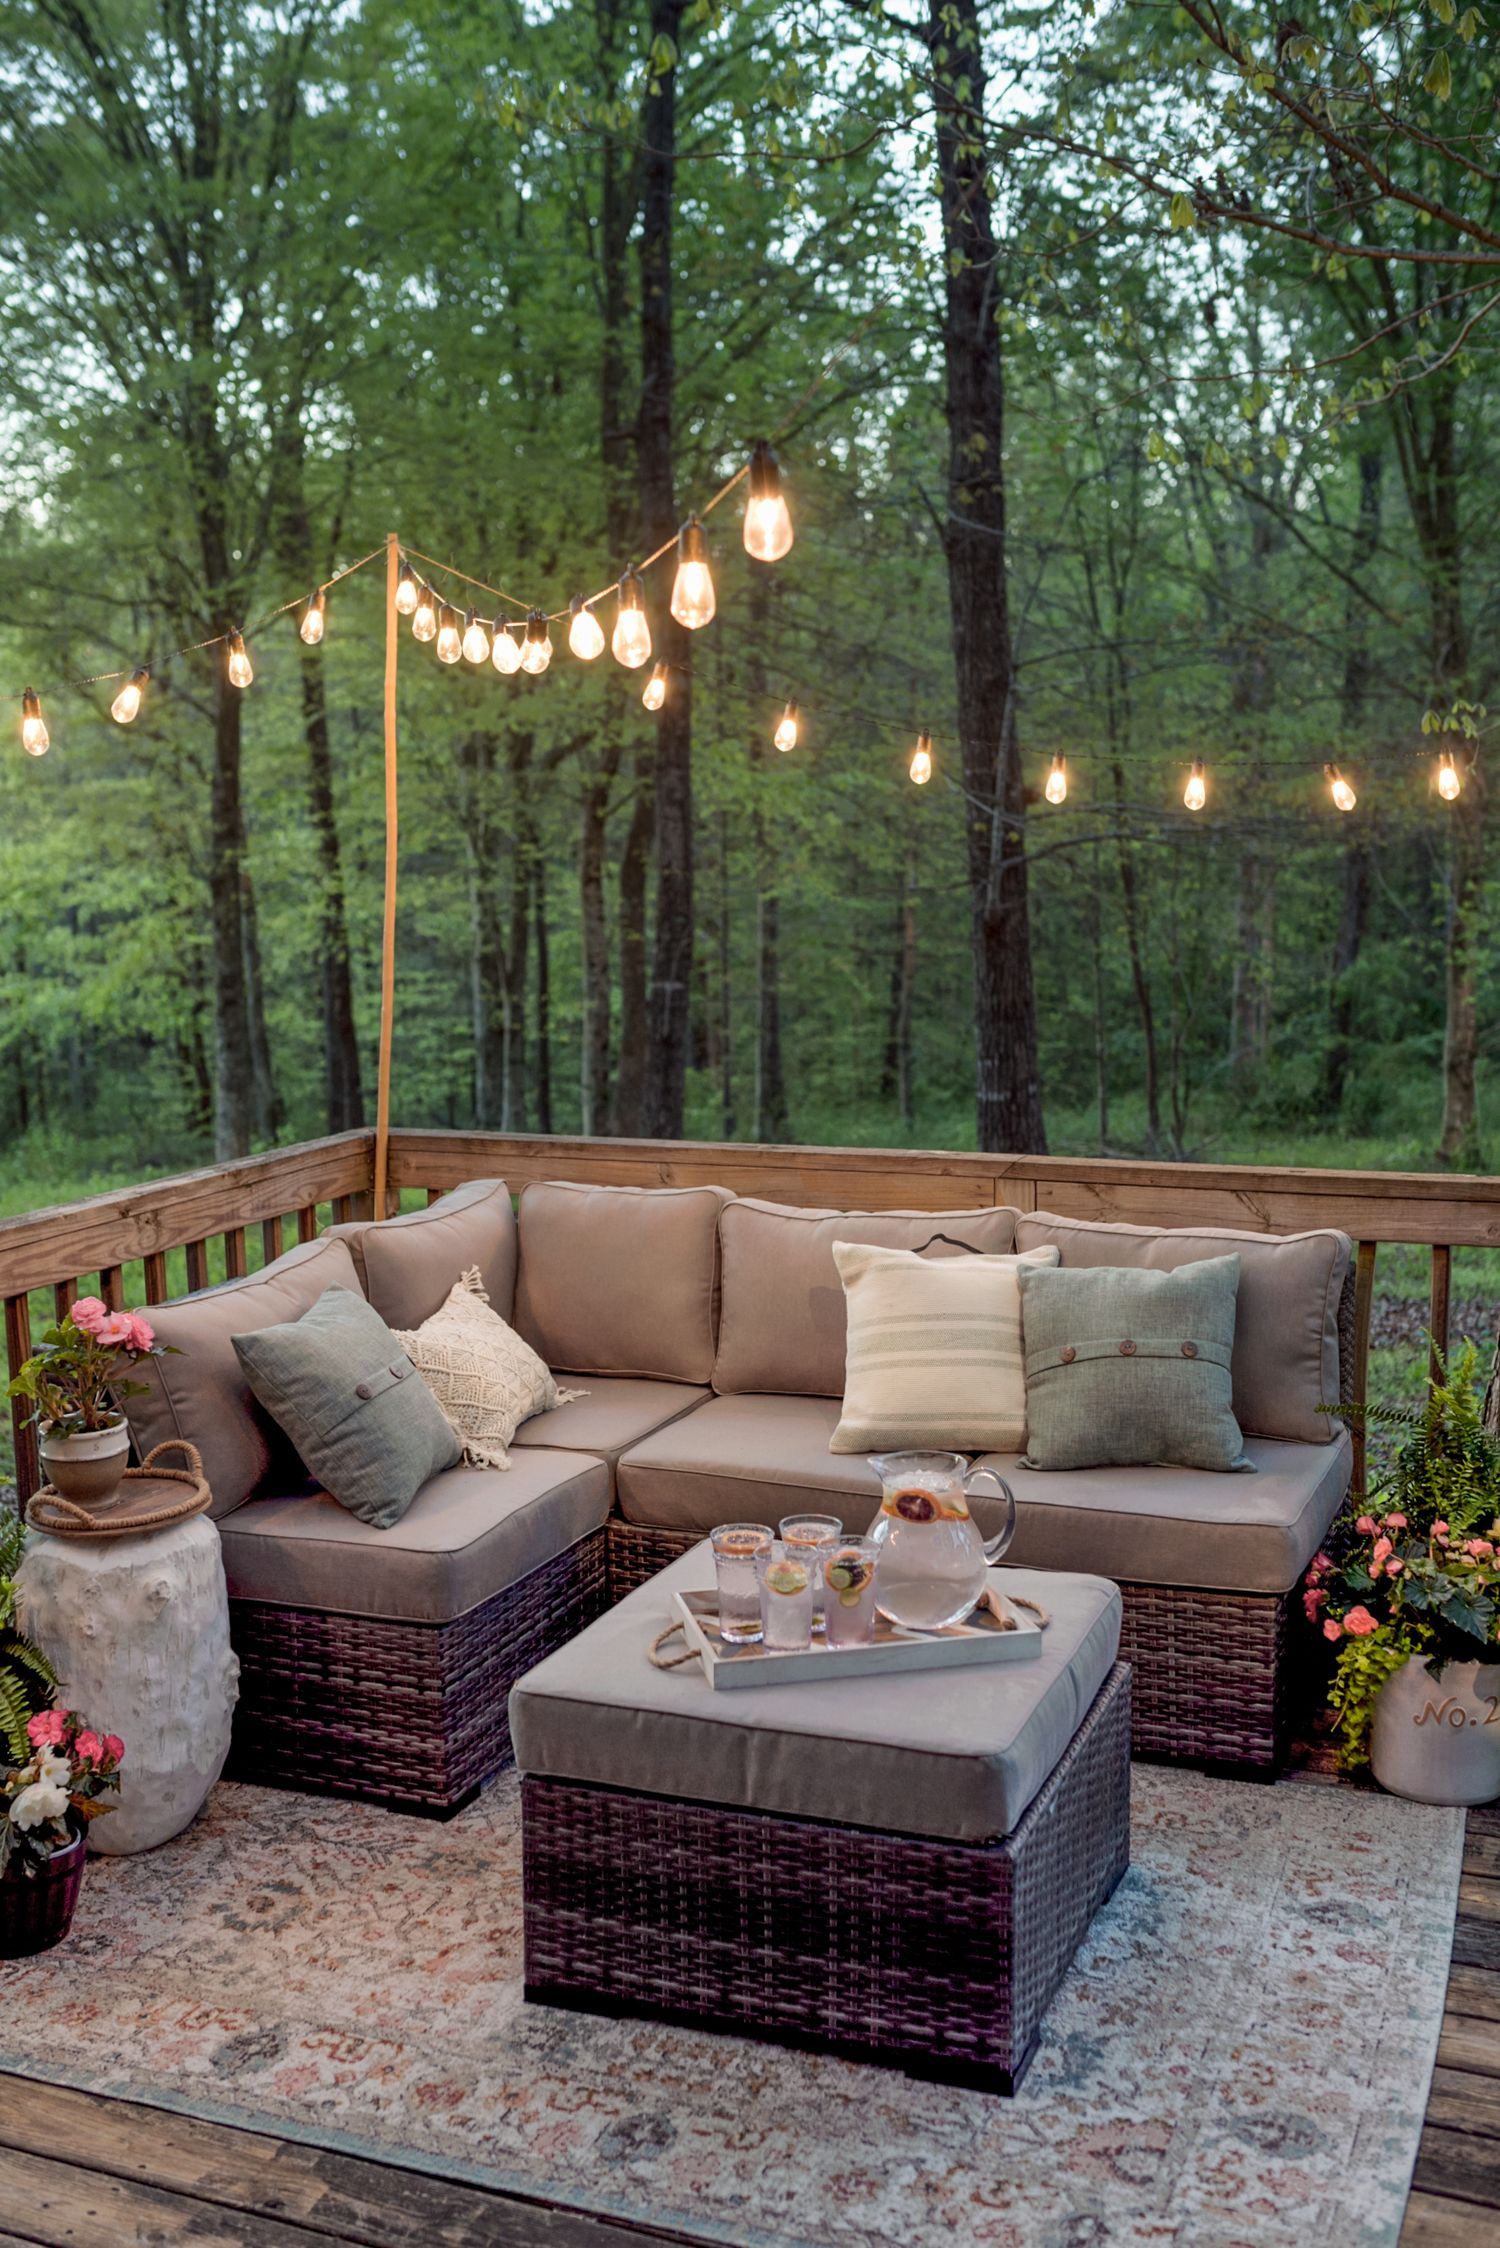 Outdoor Decorating Ideas Tips On How To Decorate Outdoors